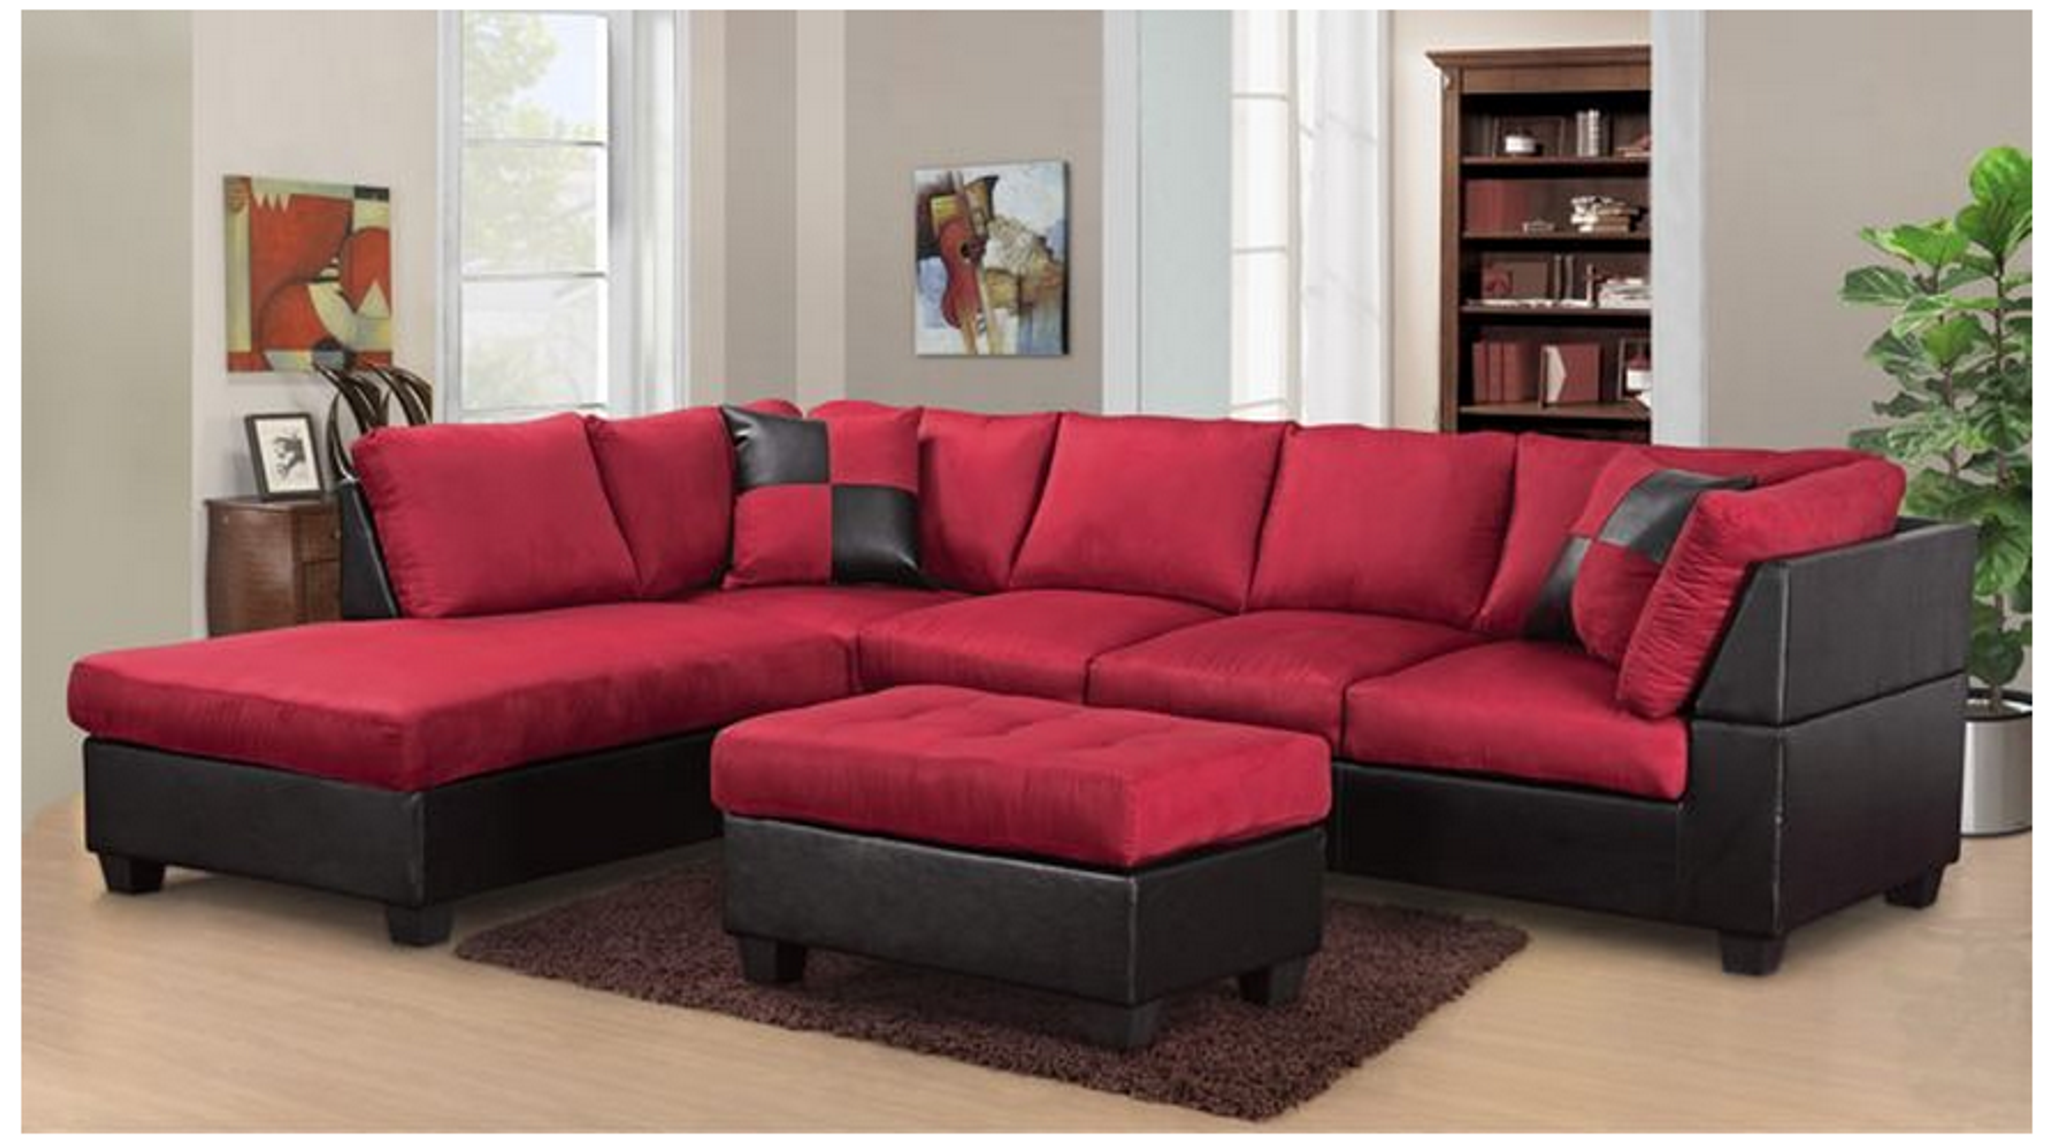 Modern 2pcs Sectional In Red Microfiber And Black Leather Kassa